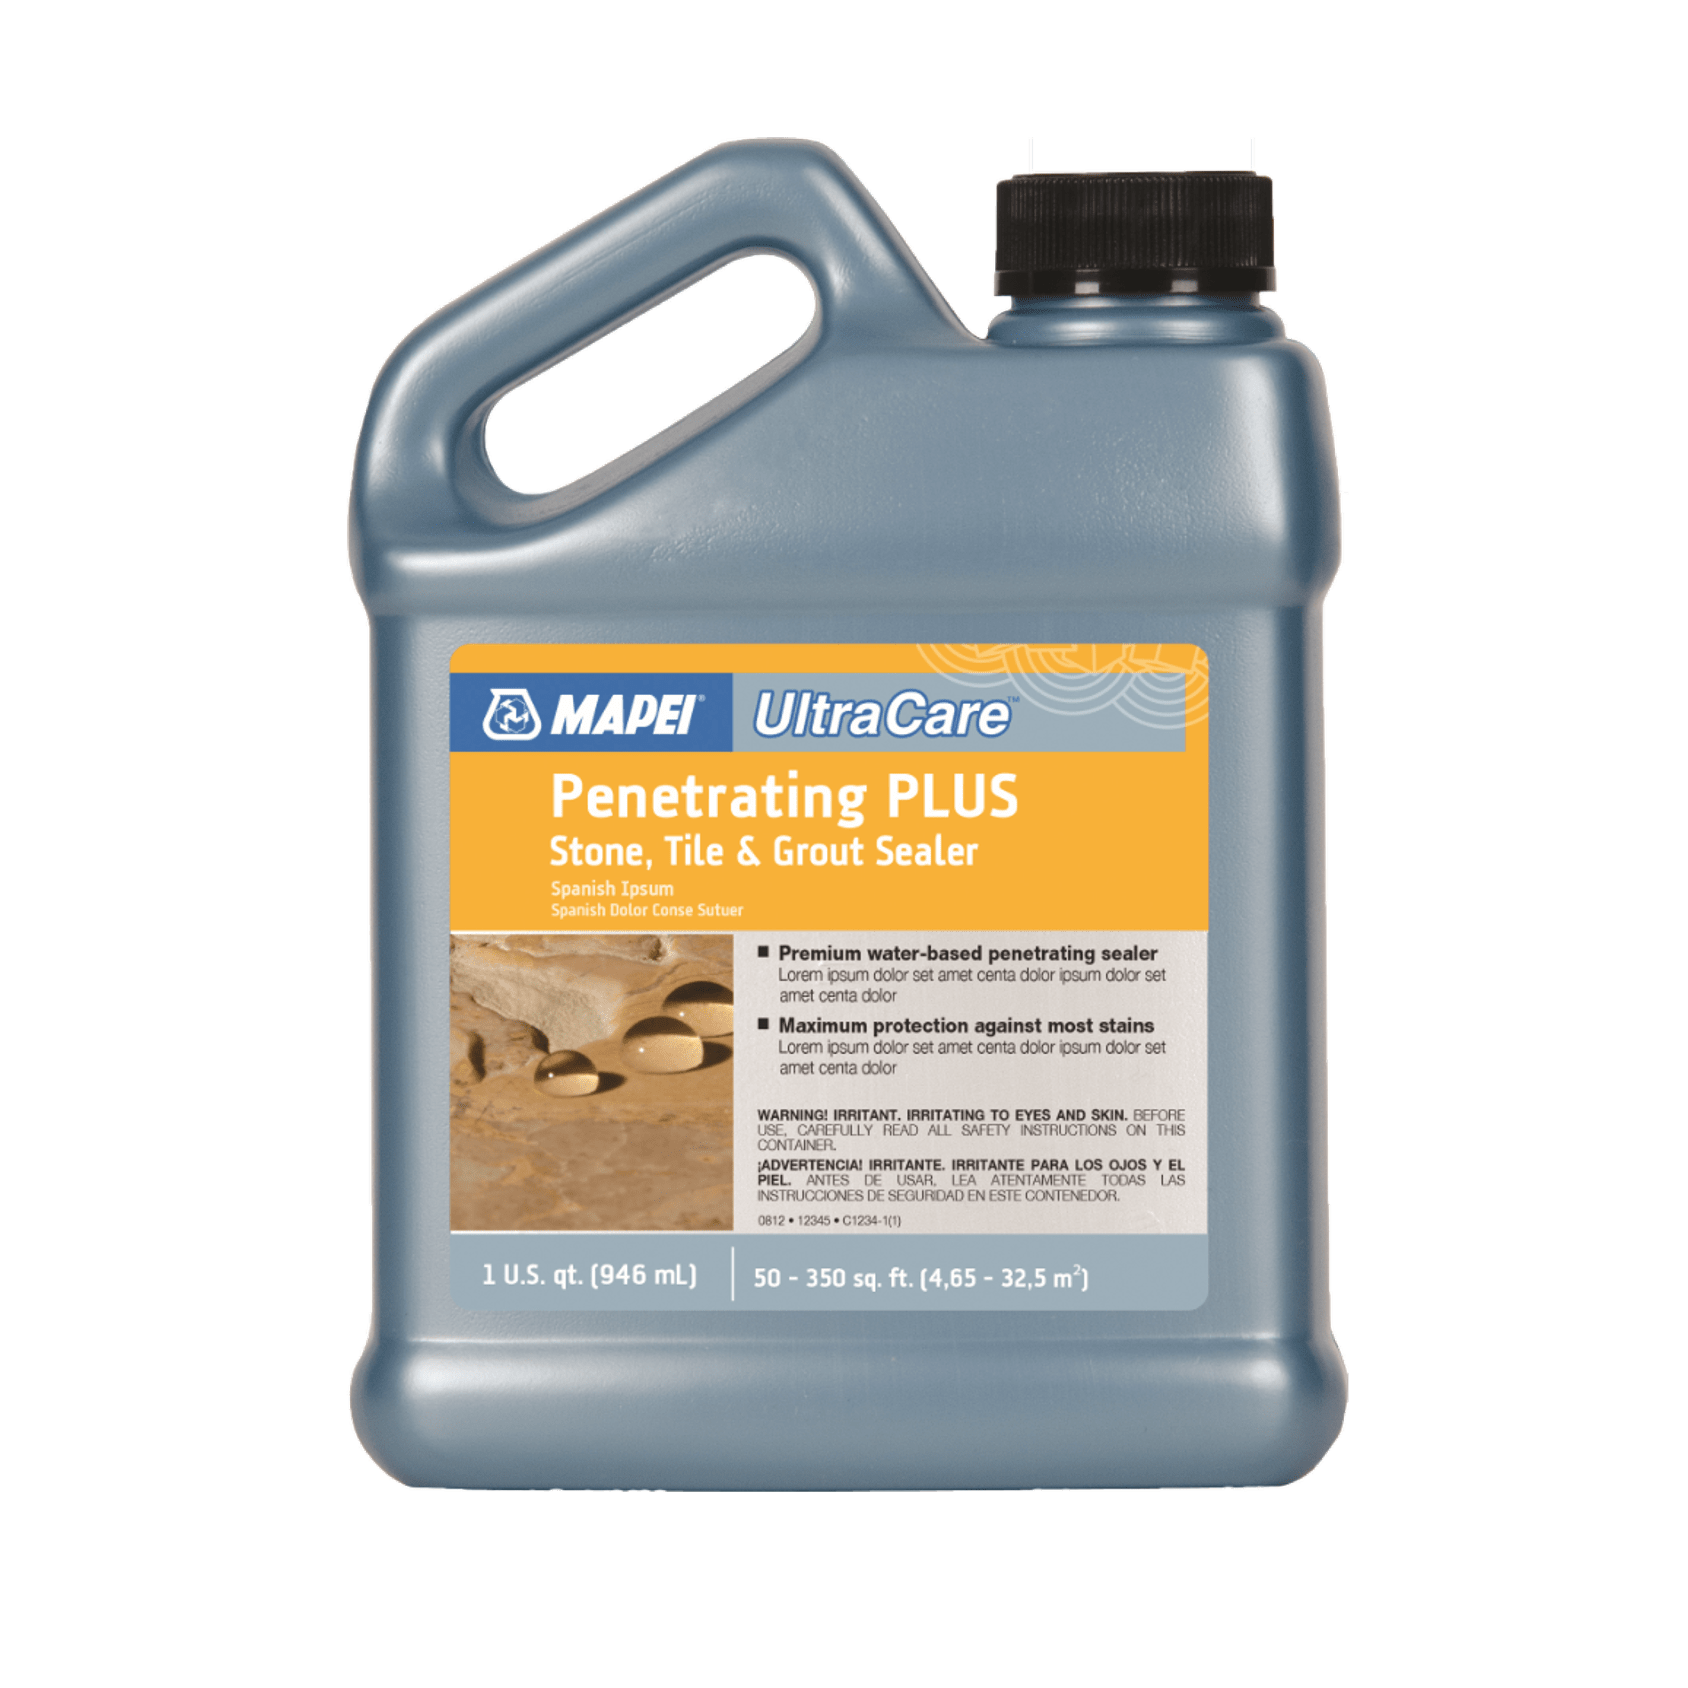 UltraCare Penetrating Plus Stone, Tile and Grout Sealer